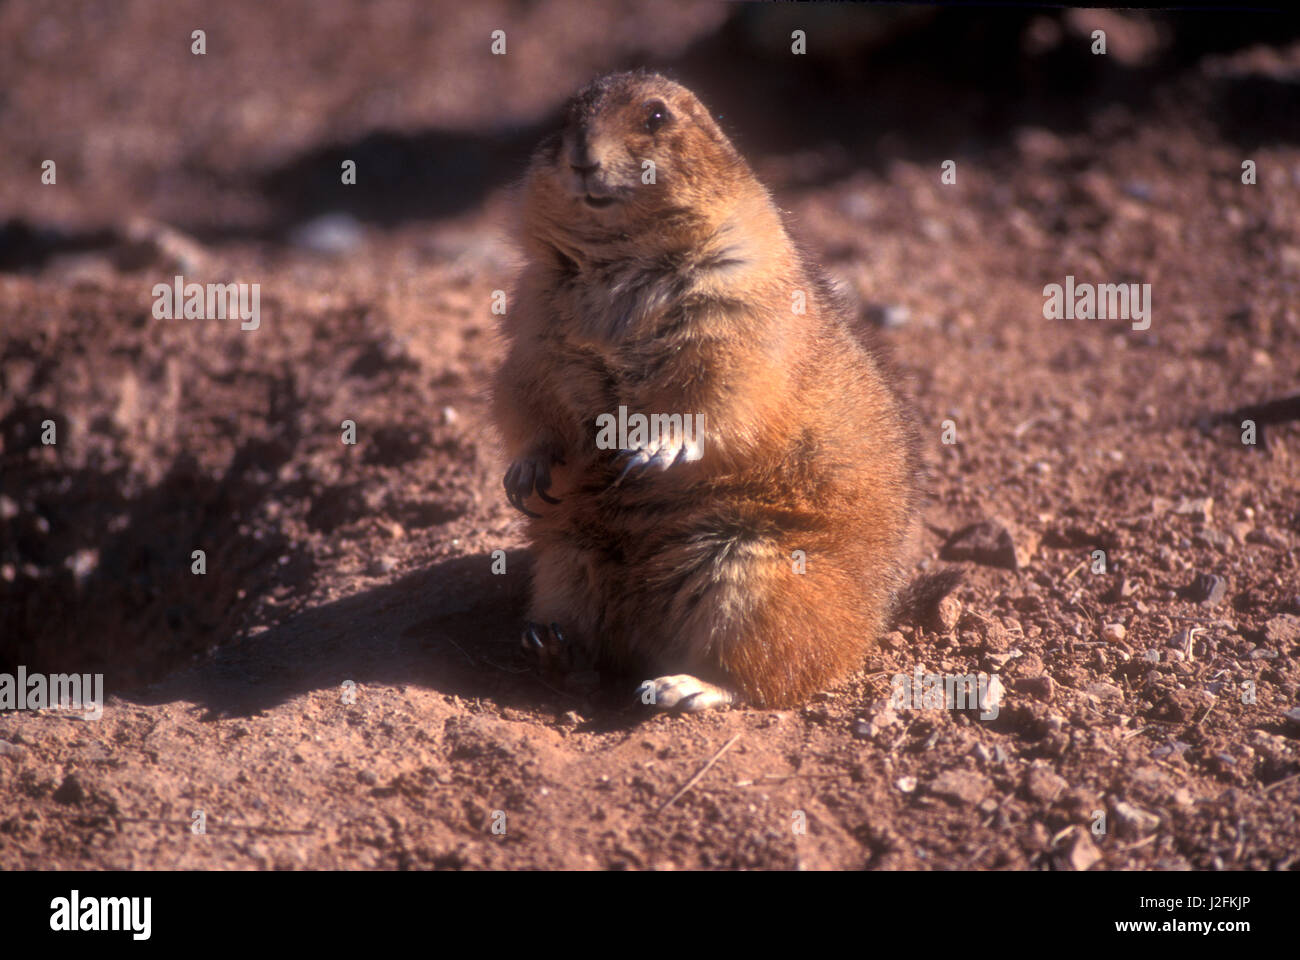 A chubby prairie dog sitting looking at camera in late afternoon light - Stock Image